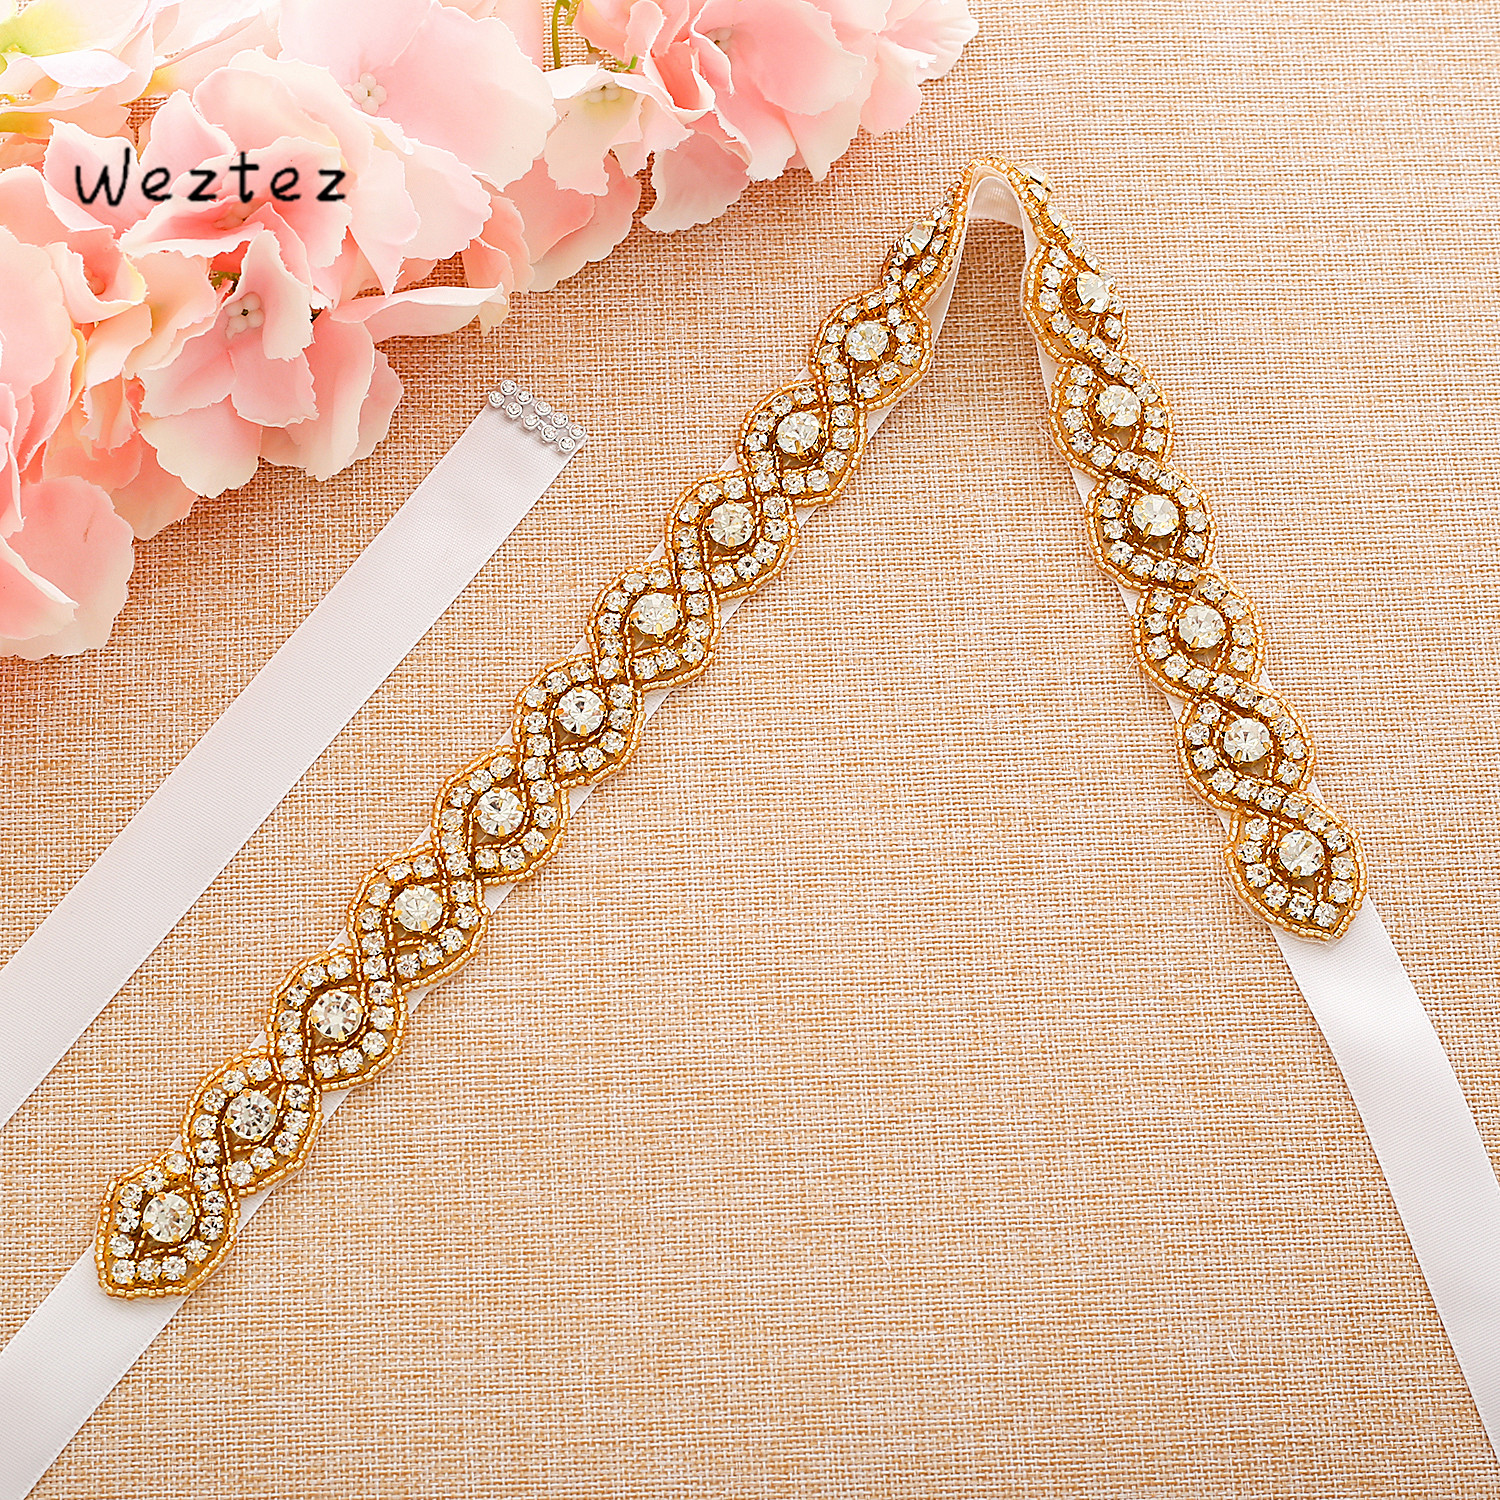 Marriage Bridal Belts Rhinestone Bridal Sash Crystal Wedding Belt Belts For Women Accessories SD108G